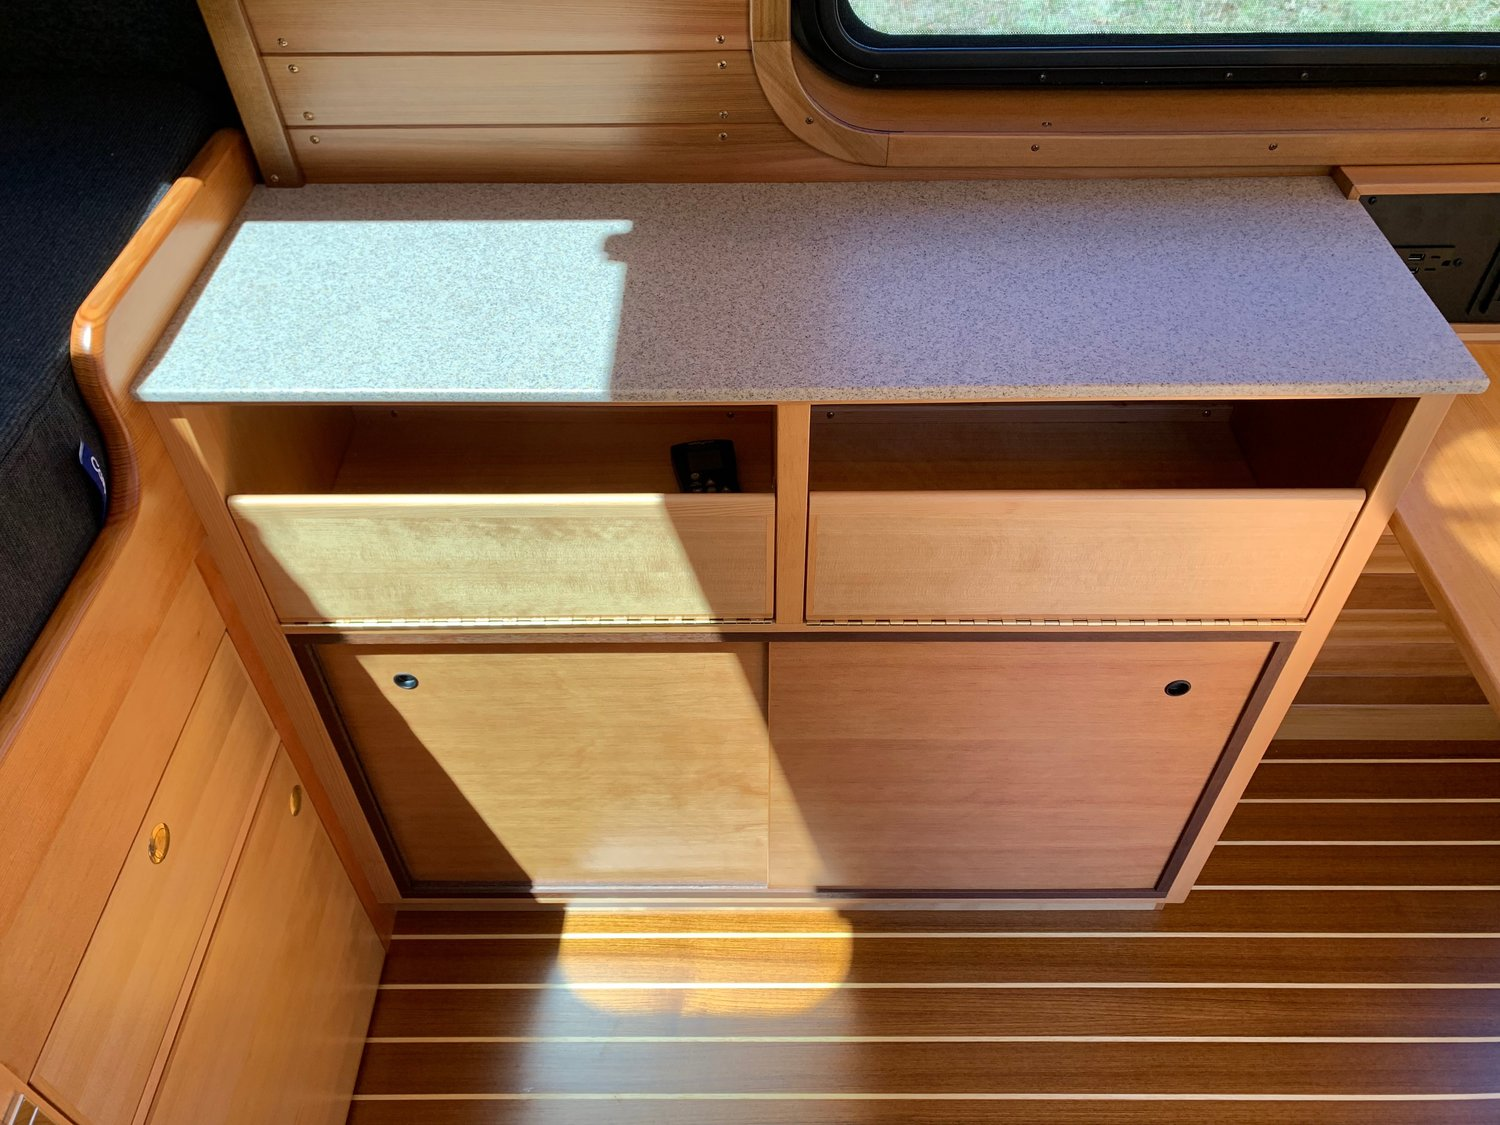 Mercedes Sprinter Van, Camper, Campervan, Custom, Maine, New England, sleep sideways, custom RV,  custom Sprinter